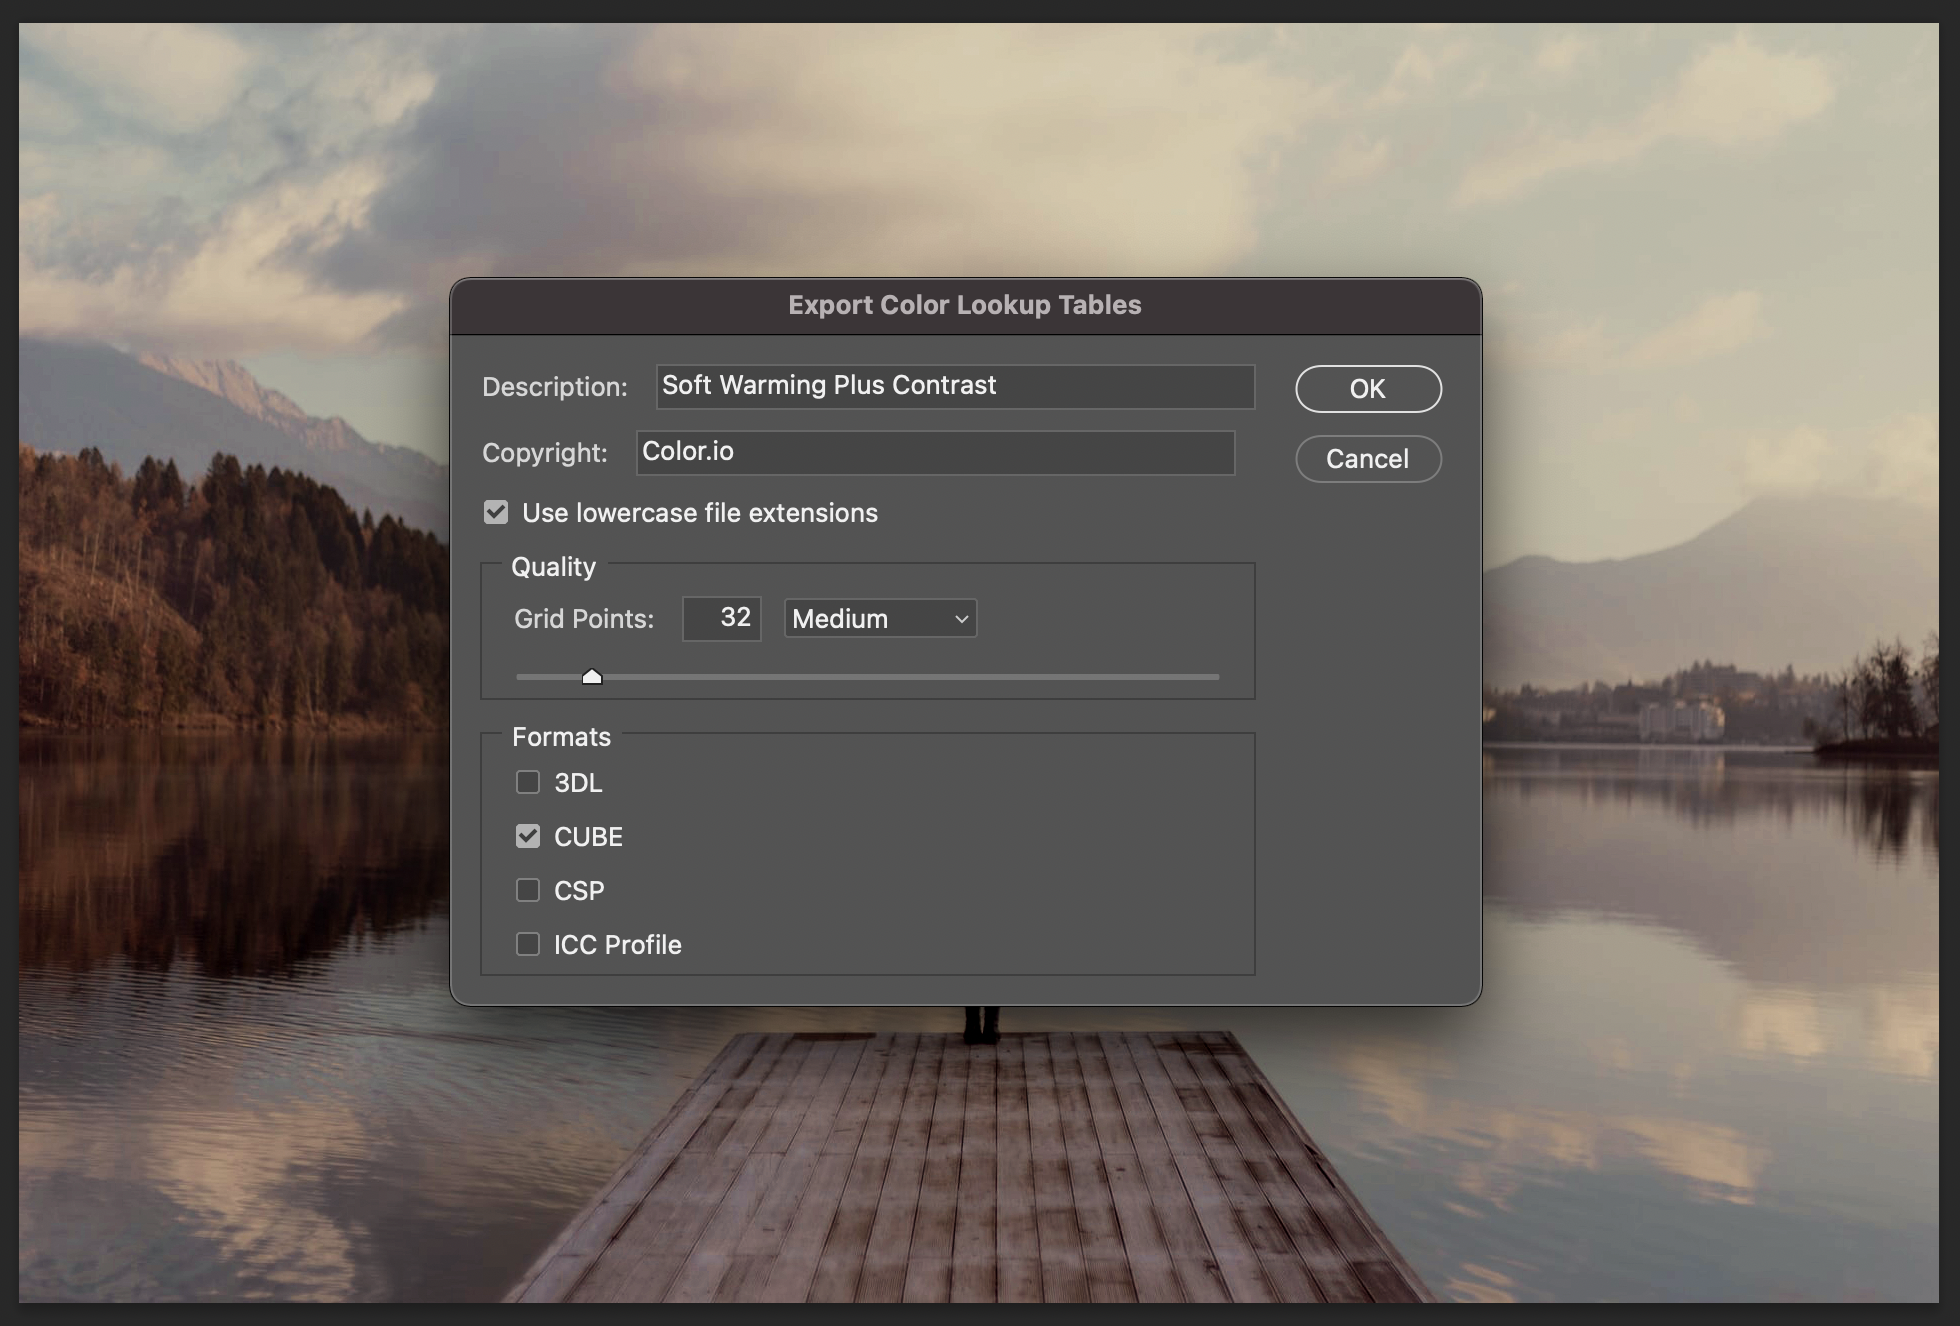 Color Lookup Tables Export Settings in Photoshop